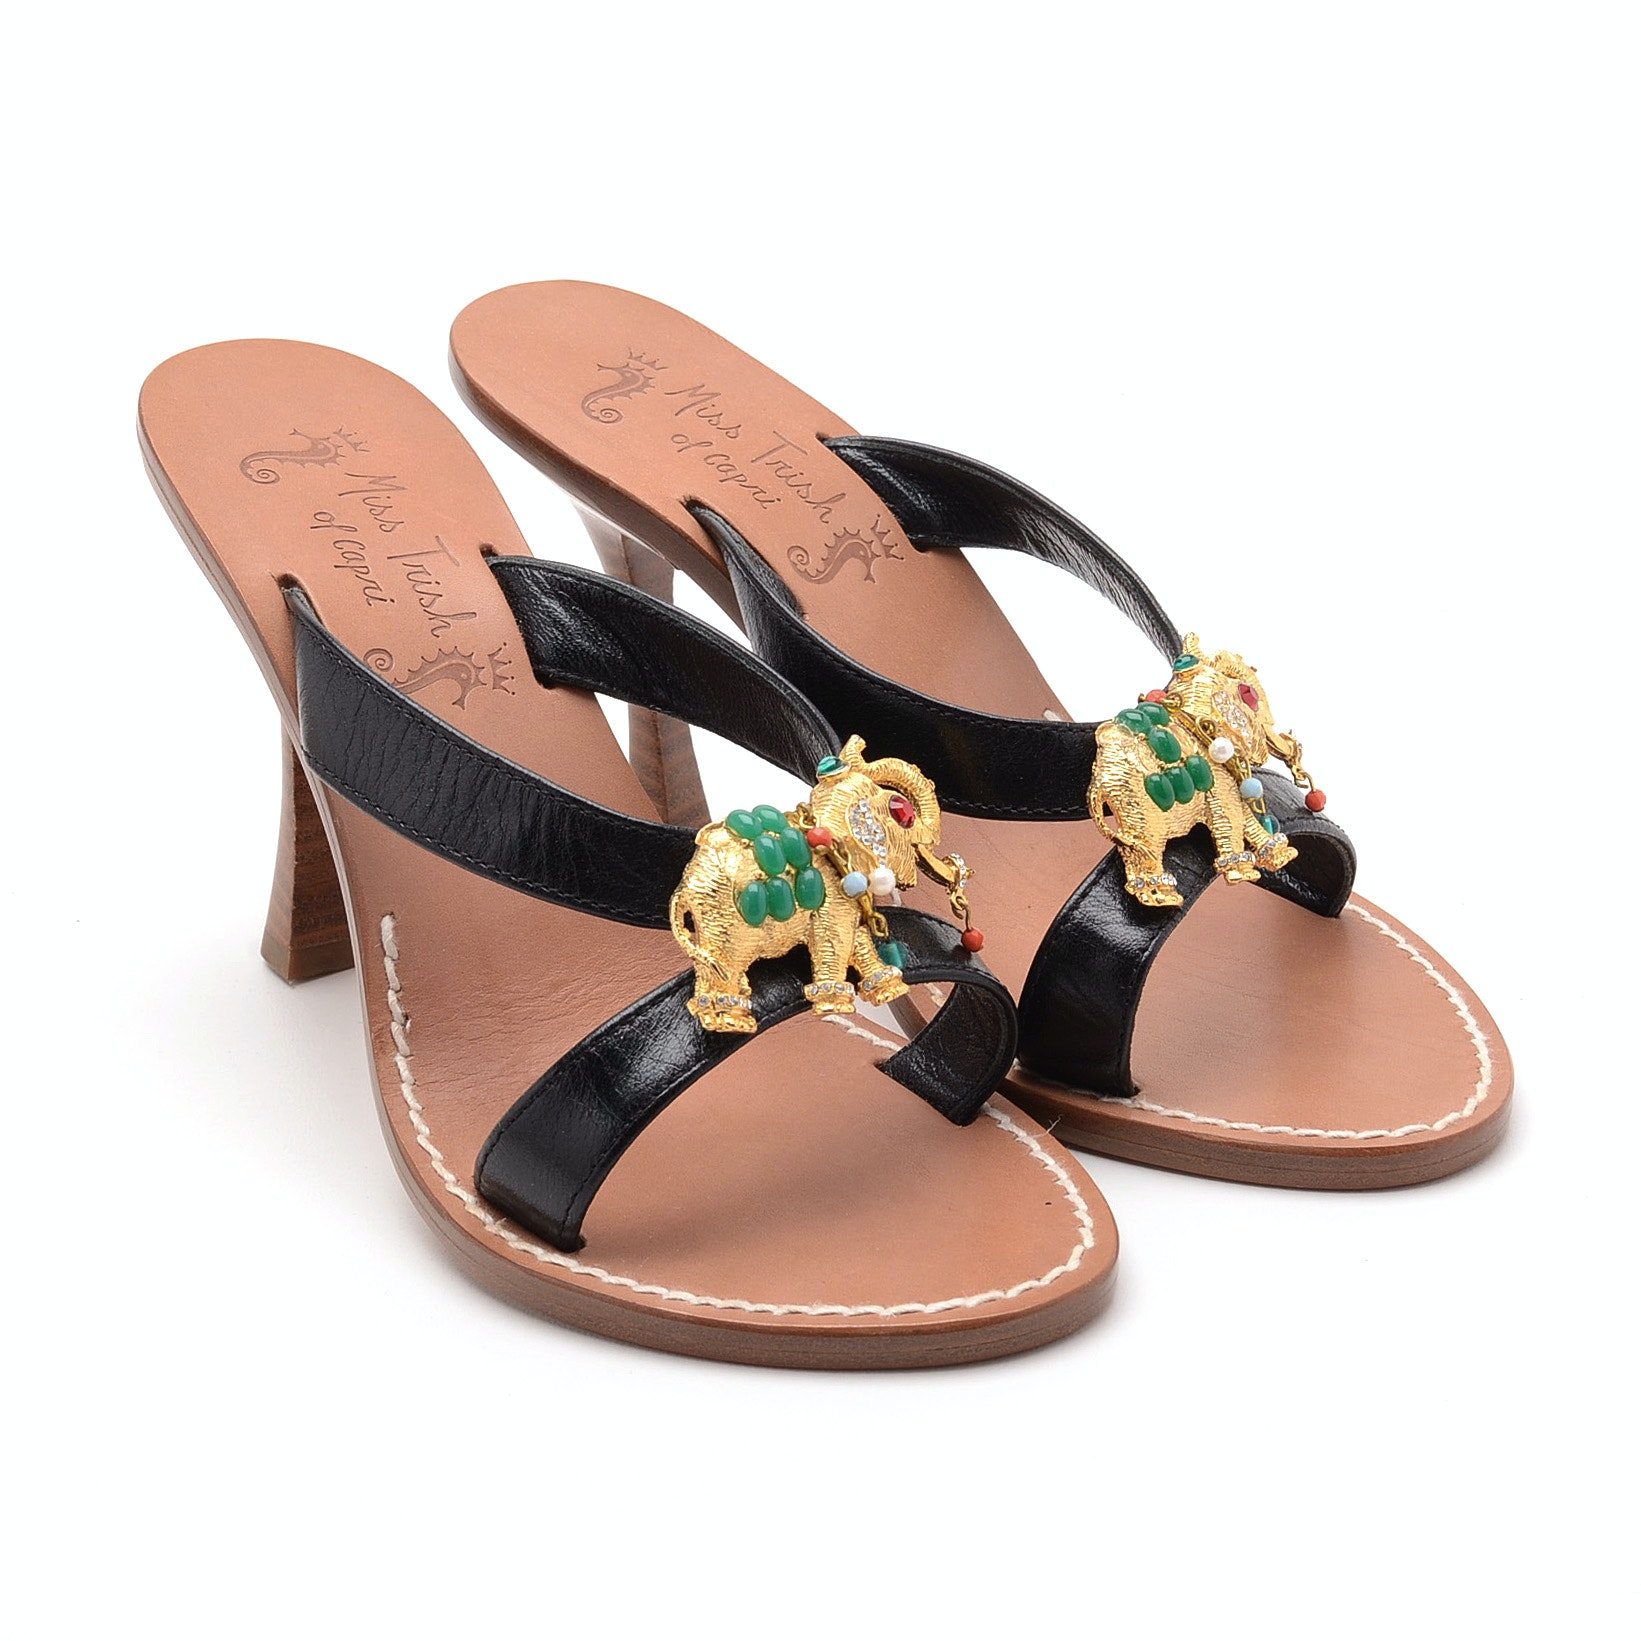 Miss Trish of Capri Black Leather Open Toe Slide Dress Sandals Embellished with Goldtone Textured Elephant Bejeweled with Cabochons and Beads